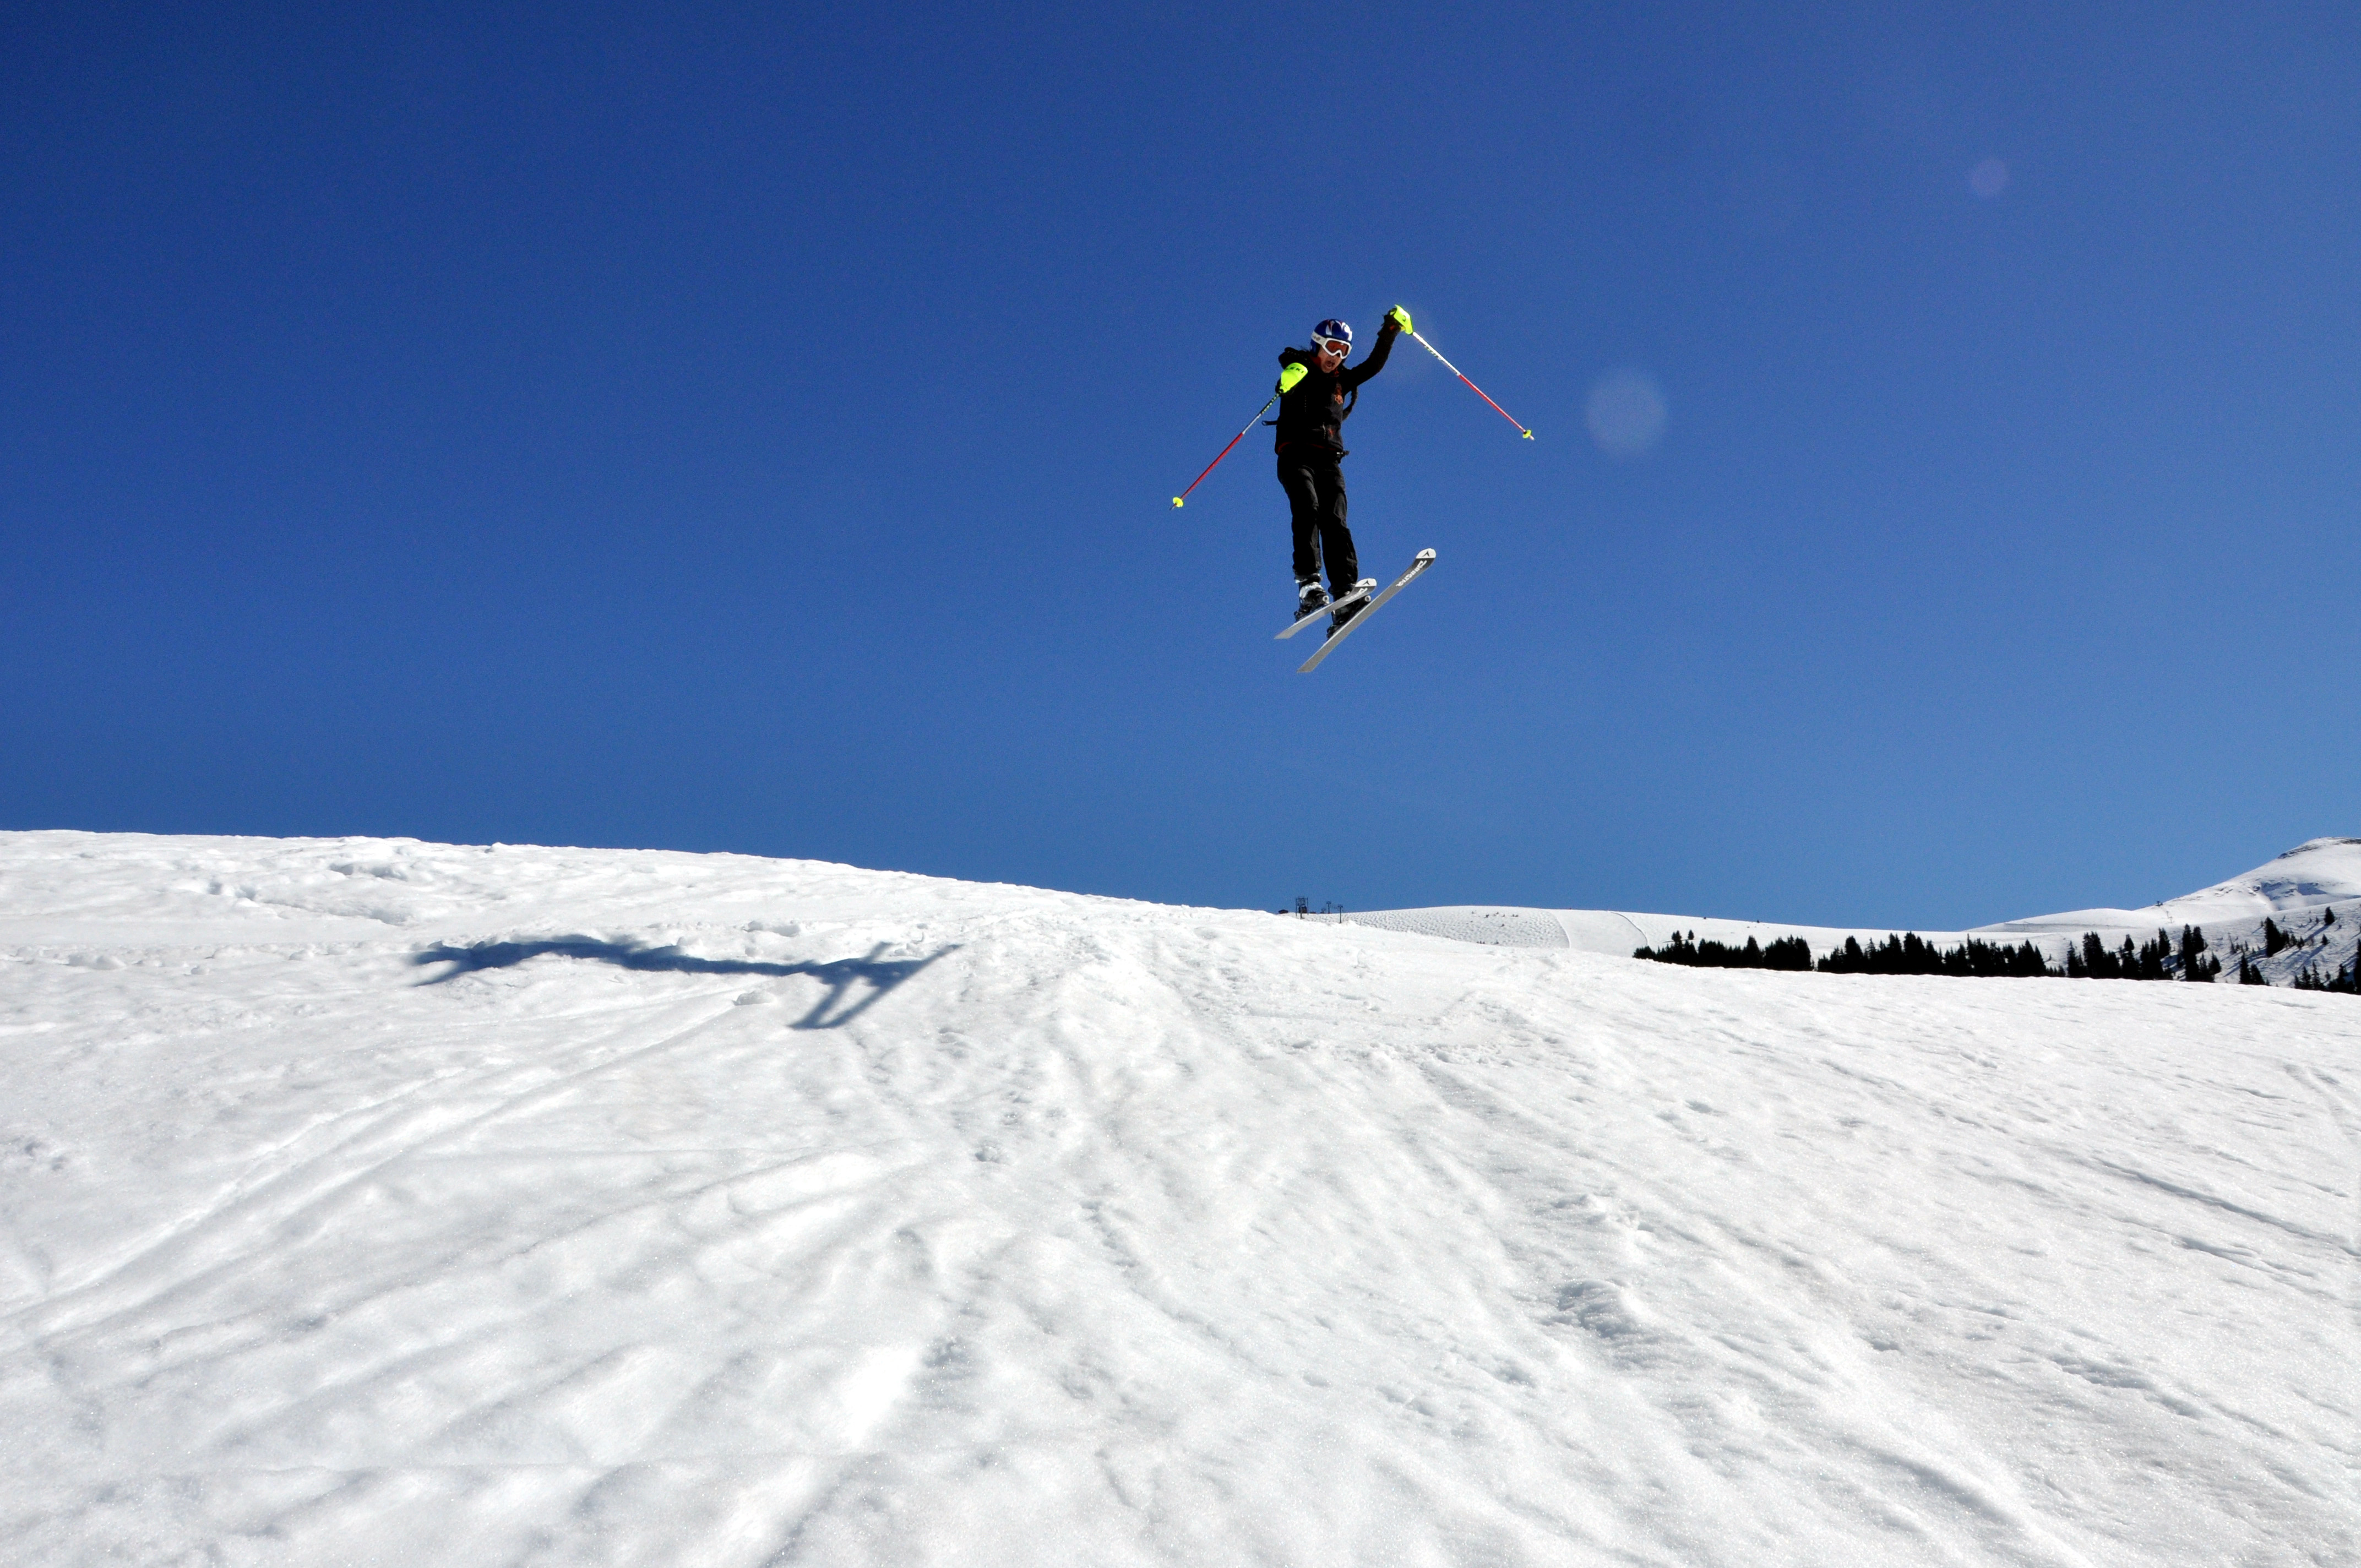 Even Thi Loan was surprised by her jump, Saint Gervais